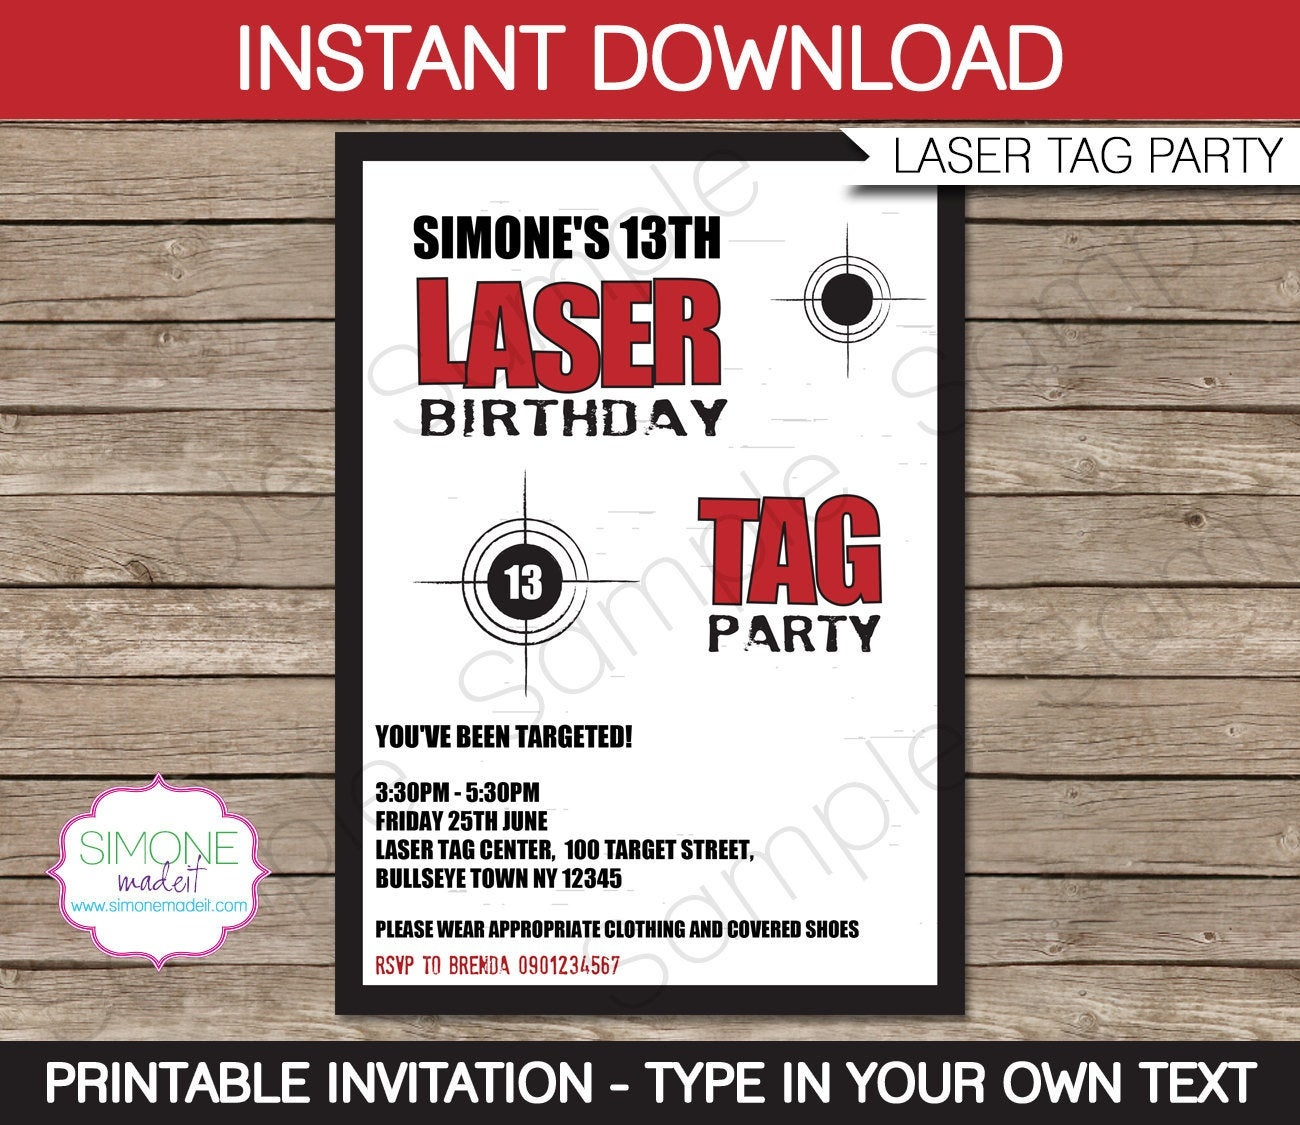 Laser Tag Invitation Template Birthday Party Instant | Etsy - Free Printable Laser Tag Invitation Template